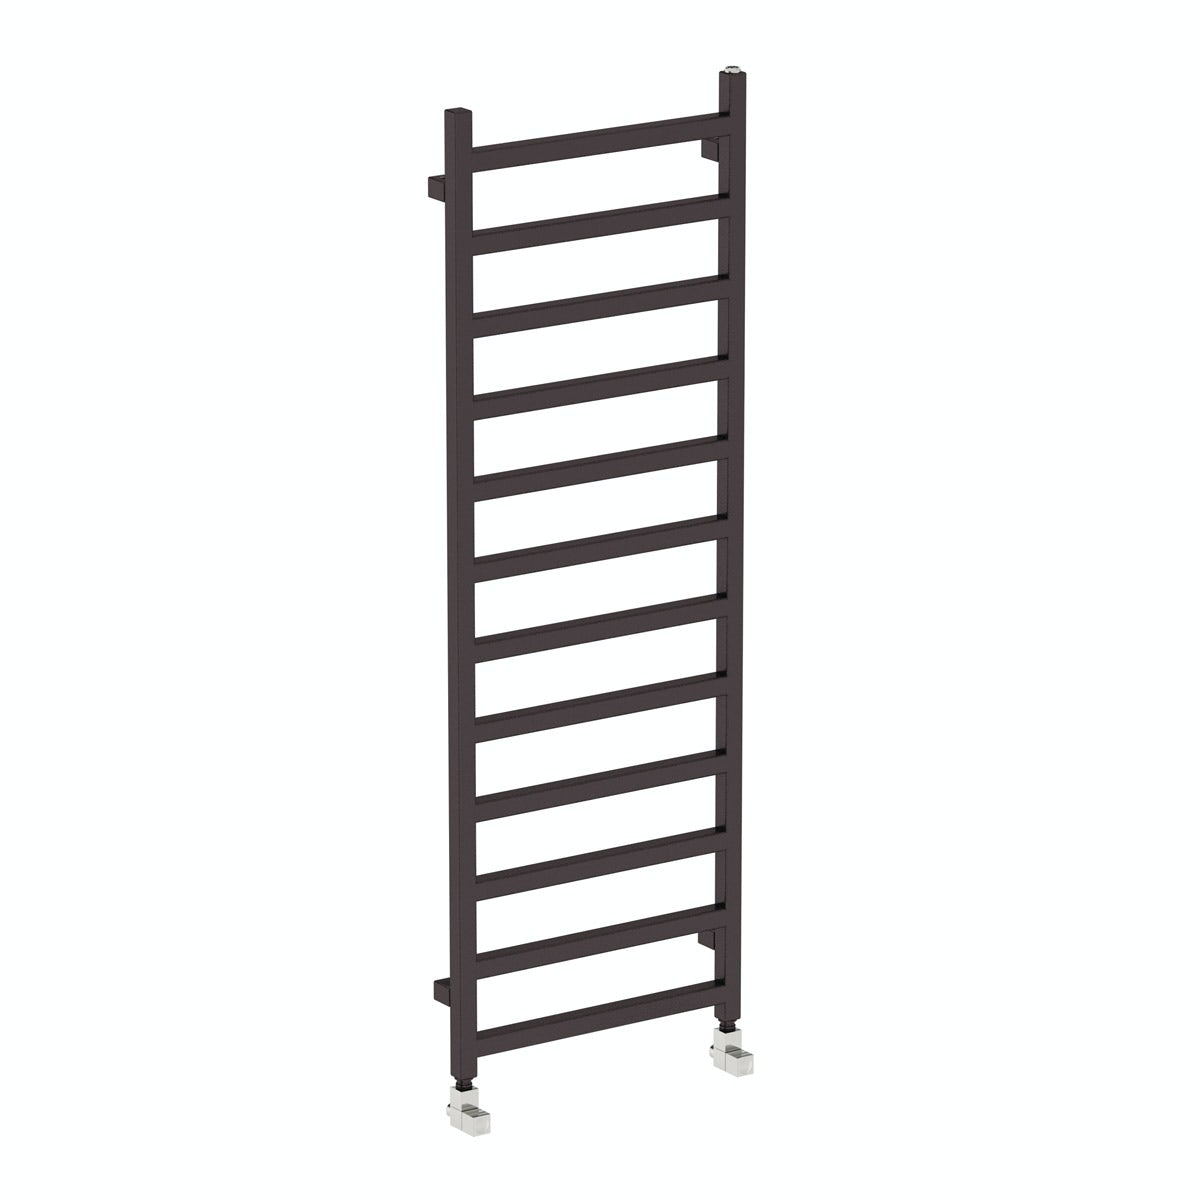 Terma Simple meteor black heated towel rail 1440 x 500